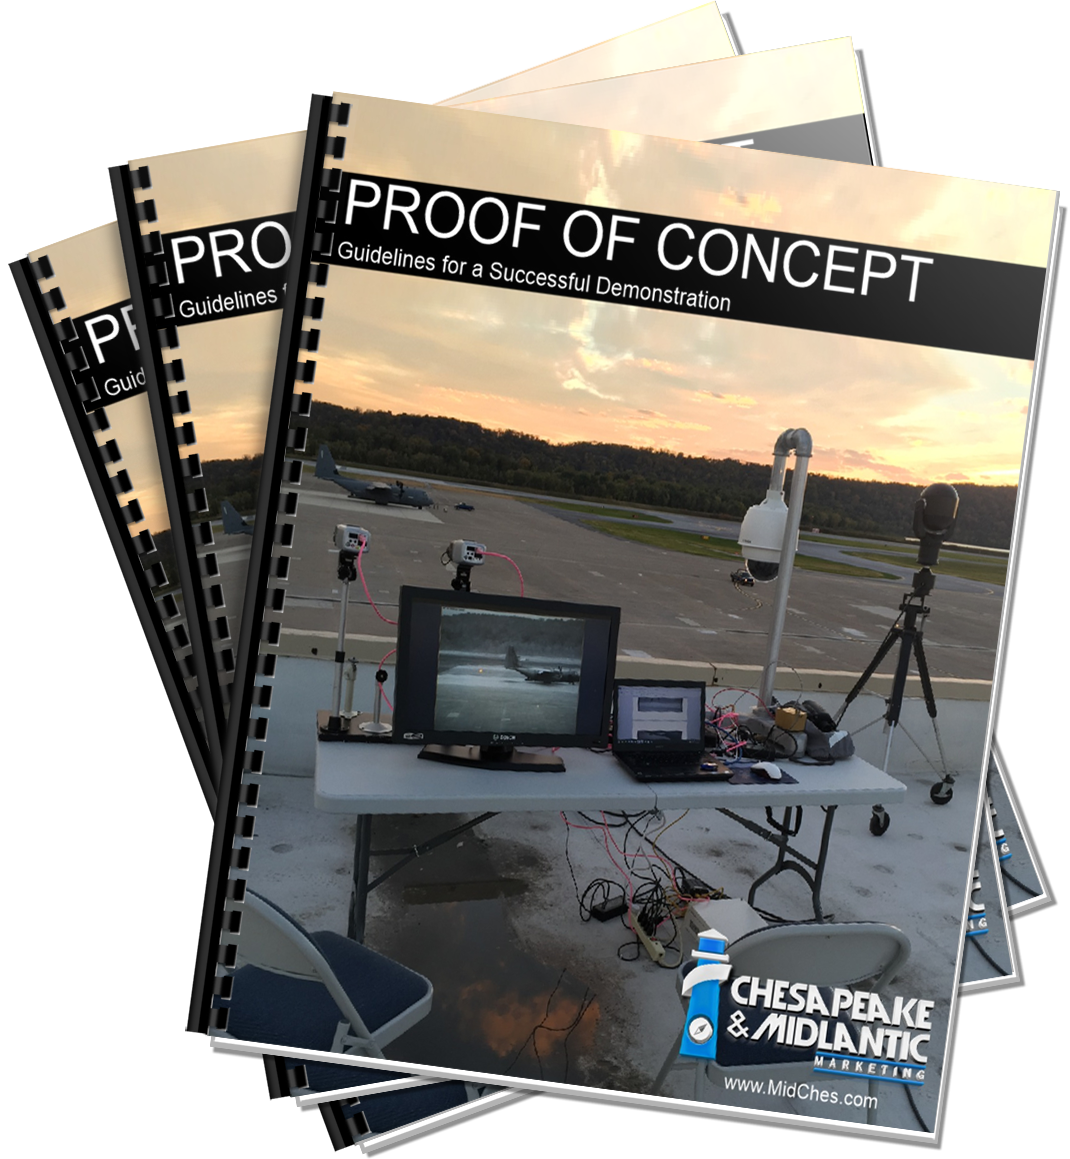 PROOF OF CONCEPT - Guidelines for a Successful Demonstration Cover Image.png